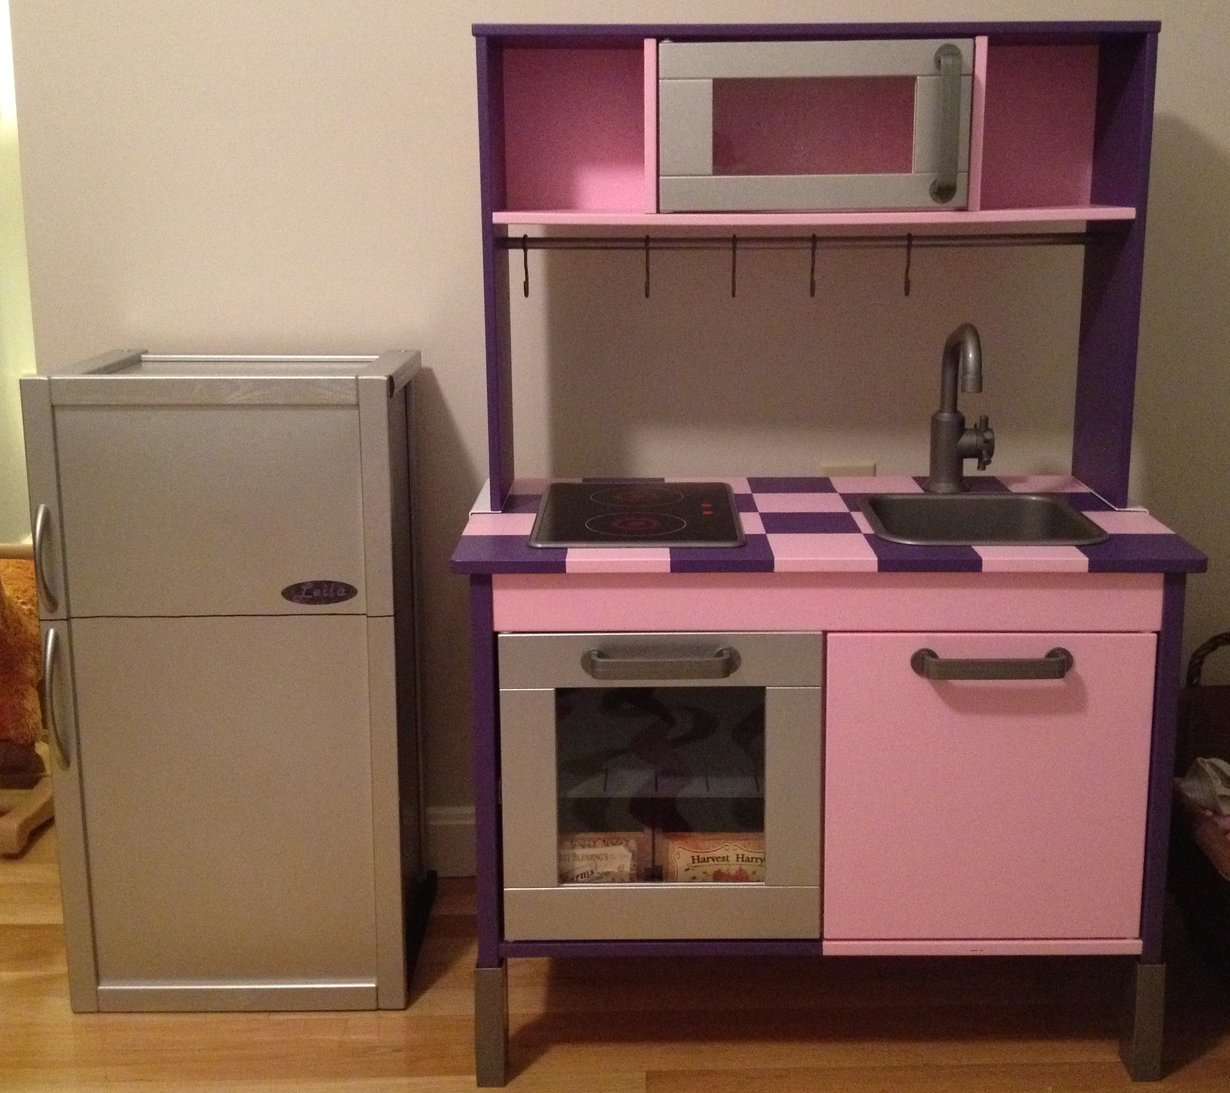 Ikea Hack Kinderkueche Duktig Kitchen Goes From Bland To Bling - Ikea Hackers